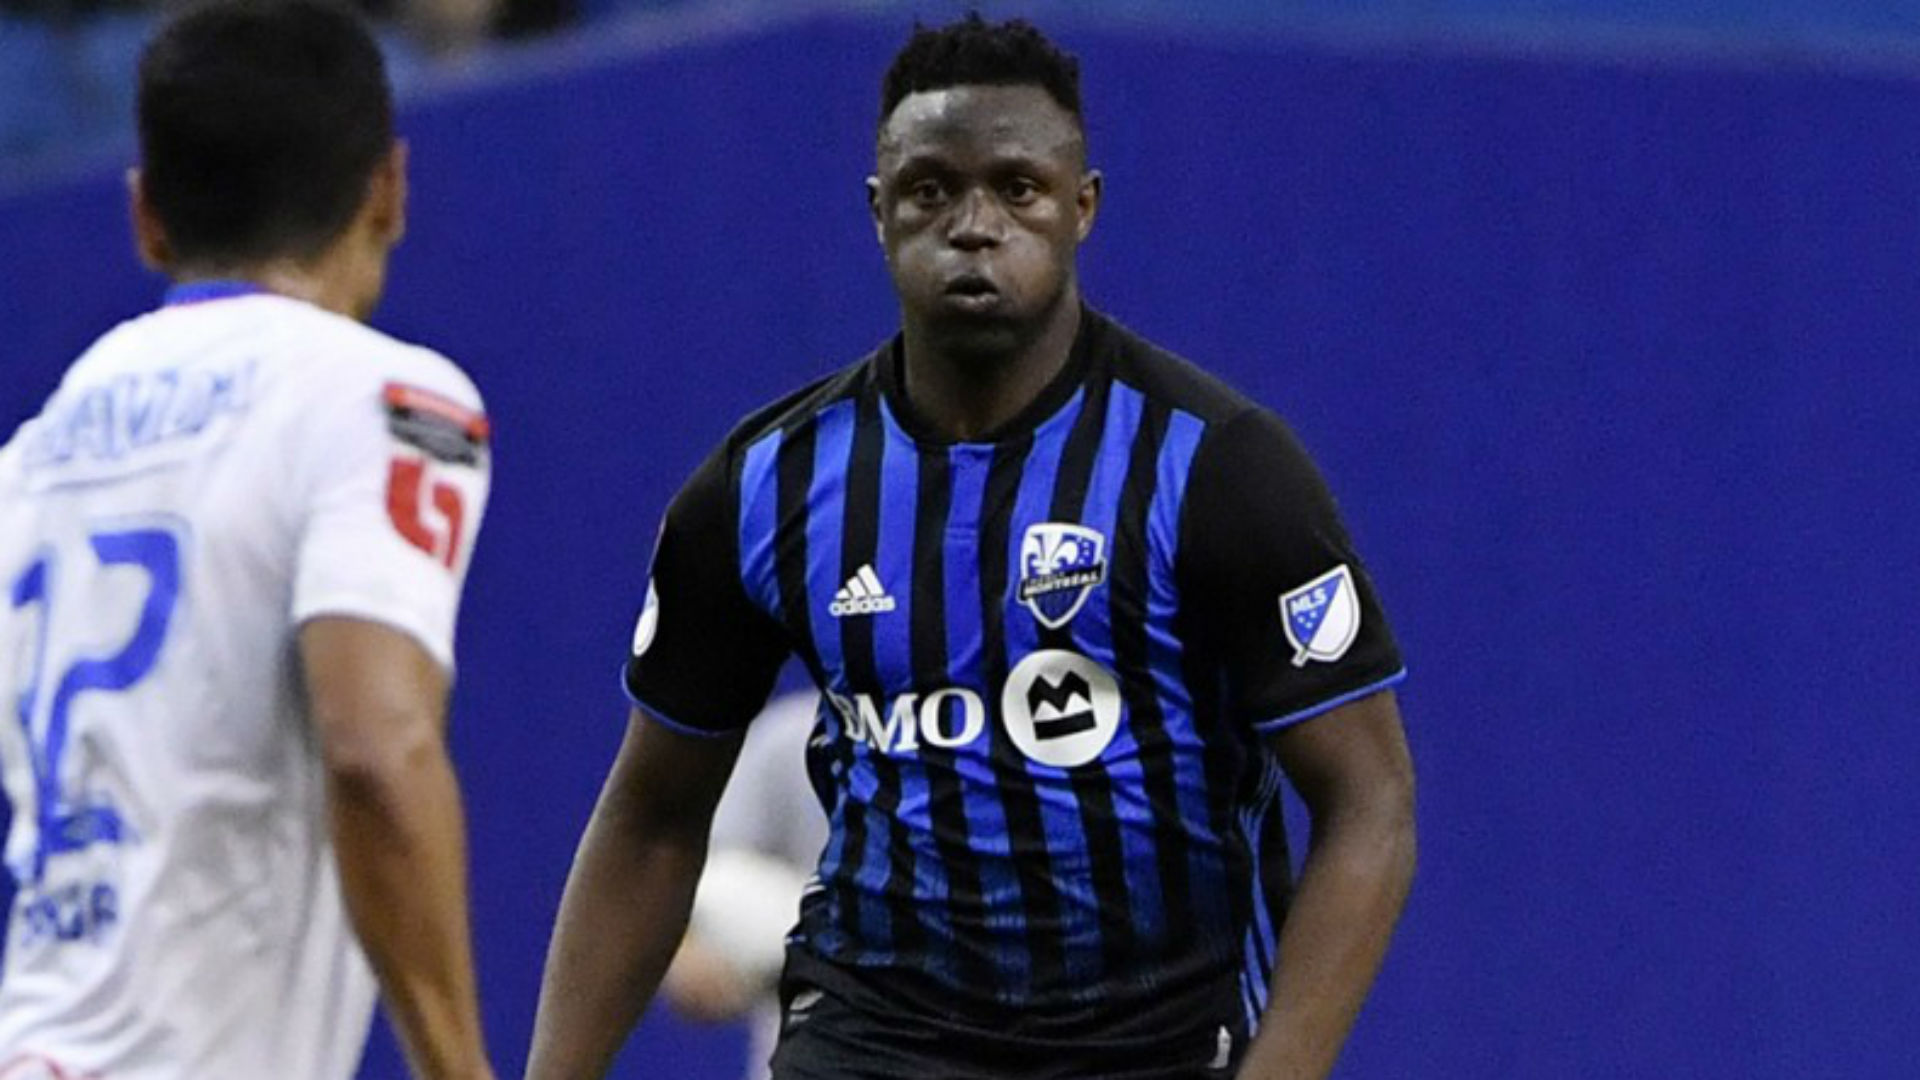 Wanyama's Montreal Impact register third straight loss against New England Revolution